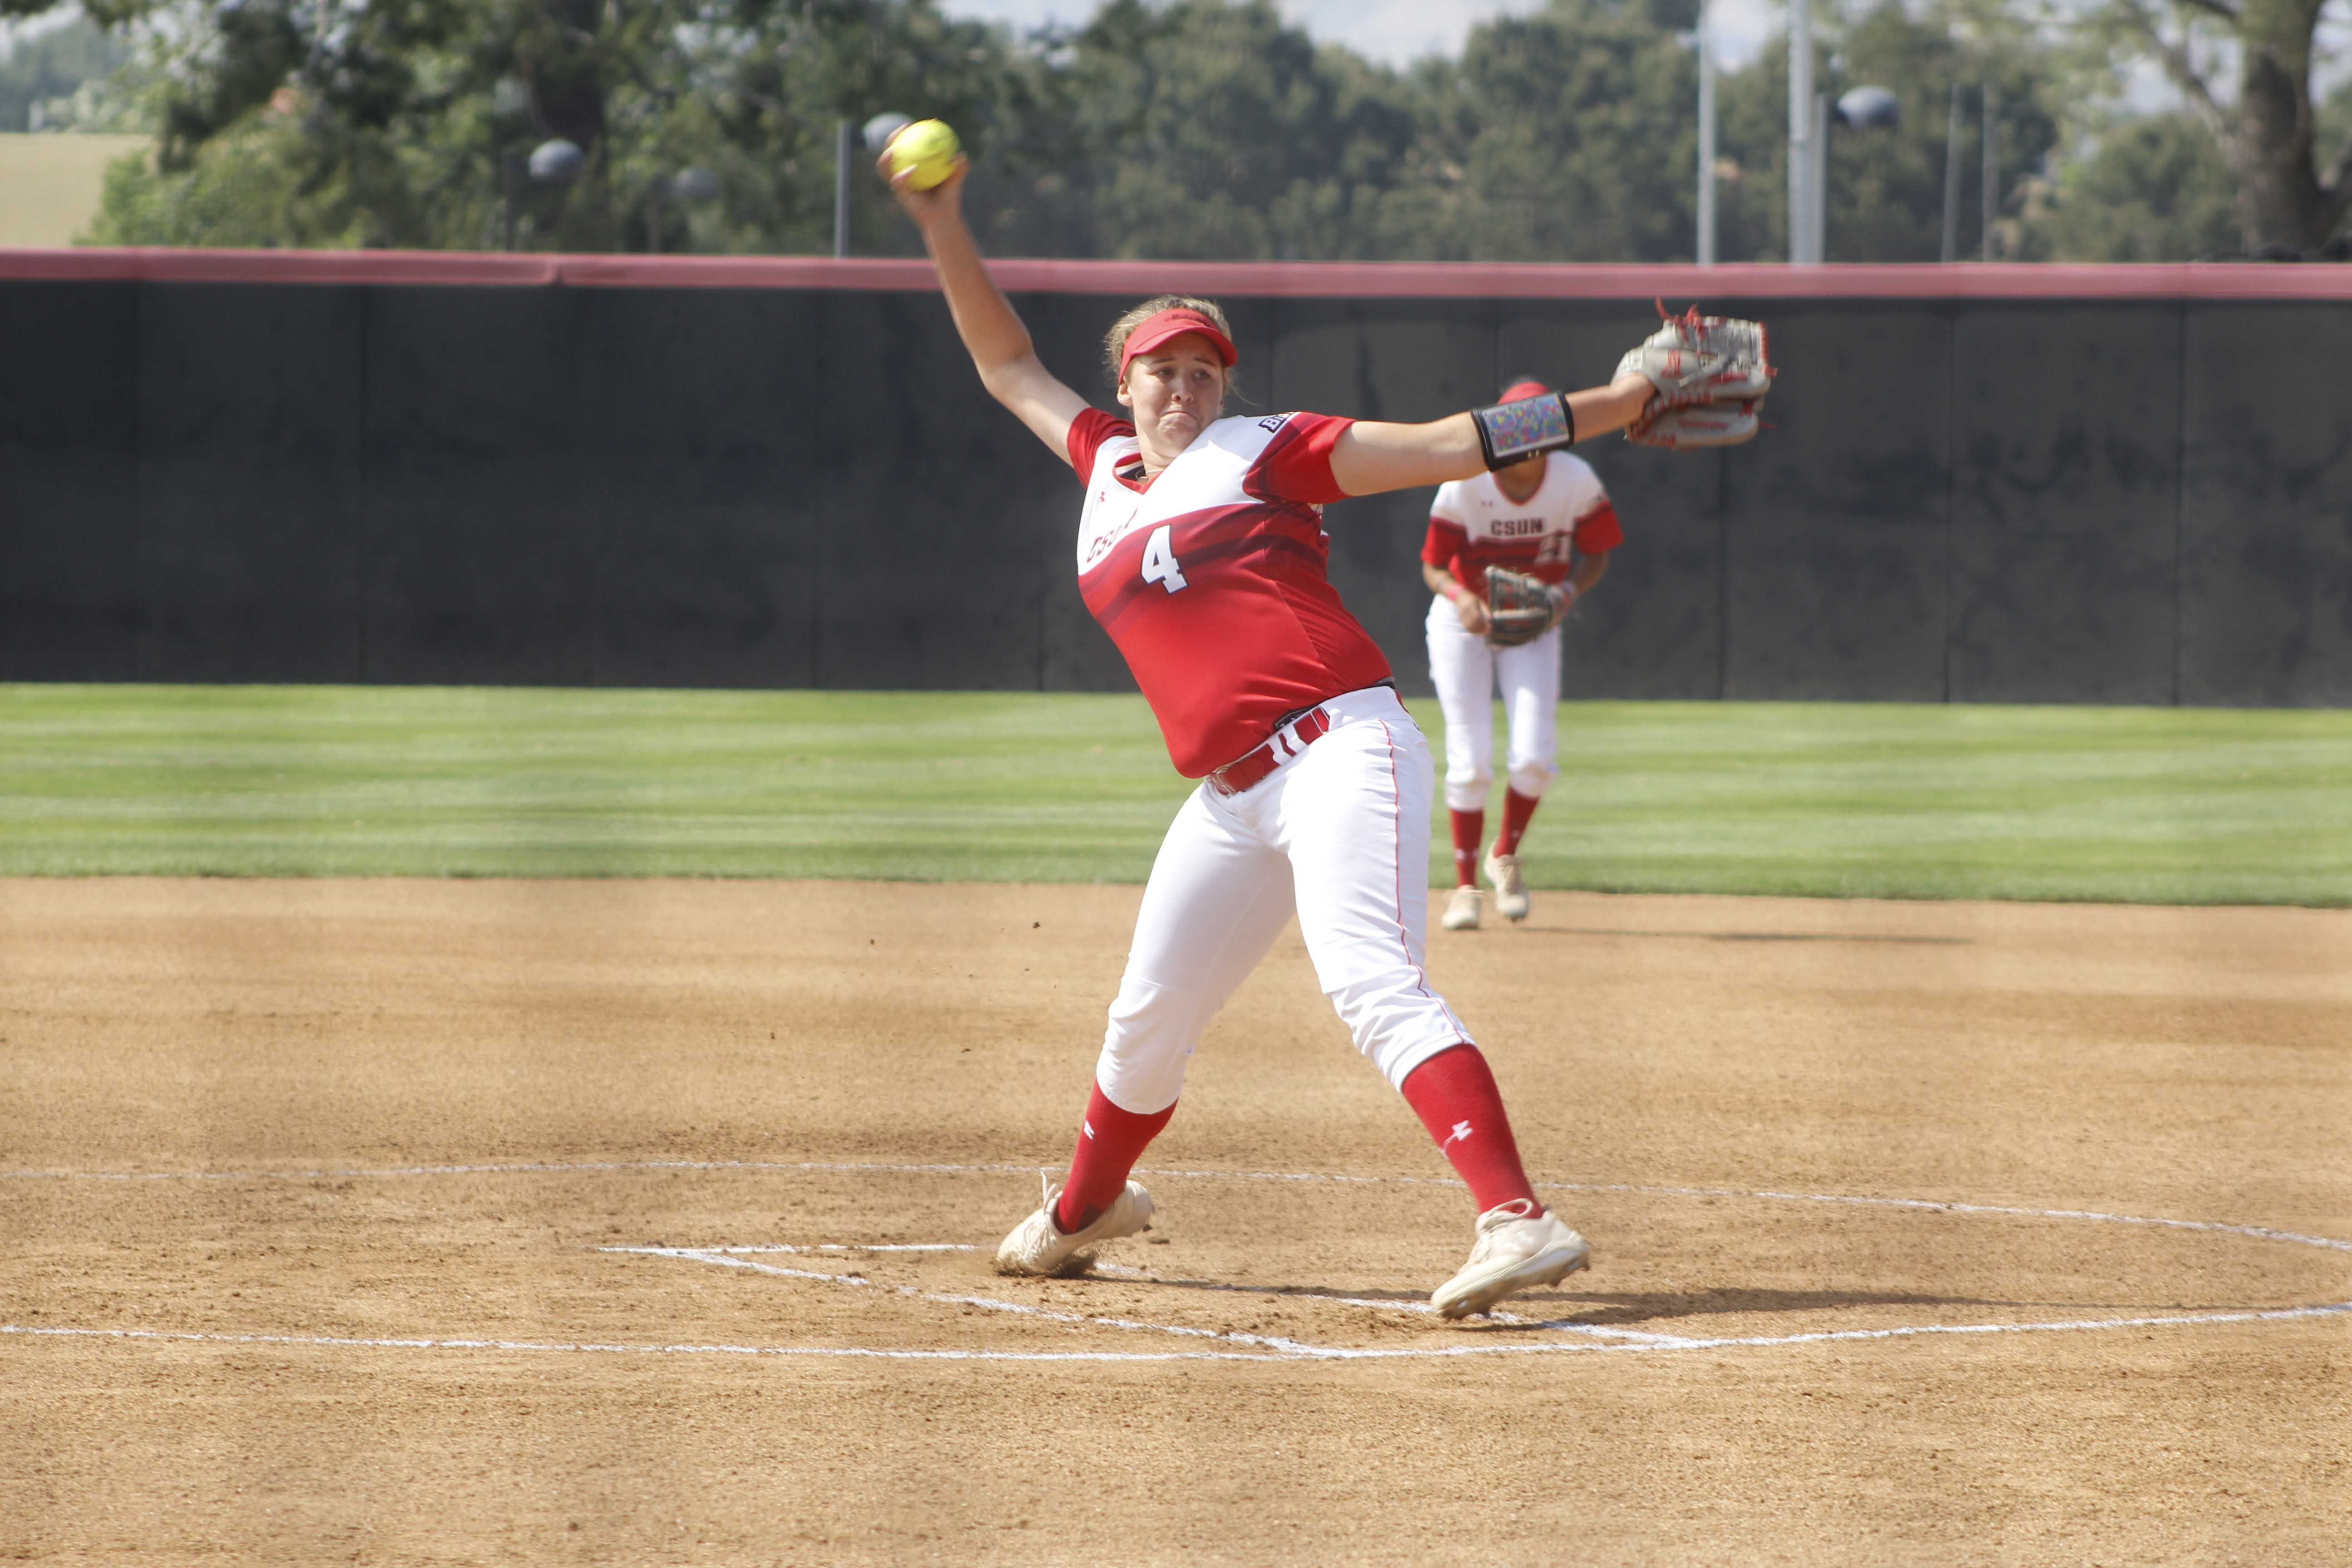 Senior Taylor Troost pitching her final game at Matador Diamond on May 4. She pitched four innings and gave up three hits, two runs, and two walks. Photo credit: Elijah Carr